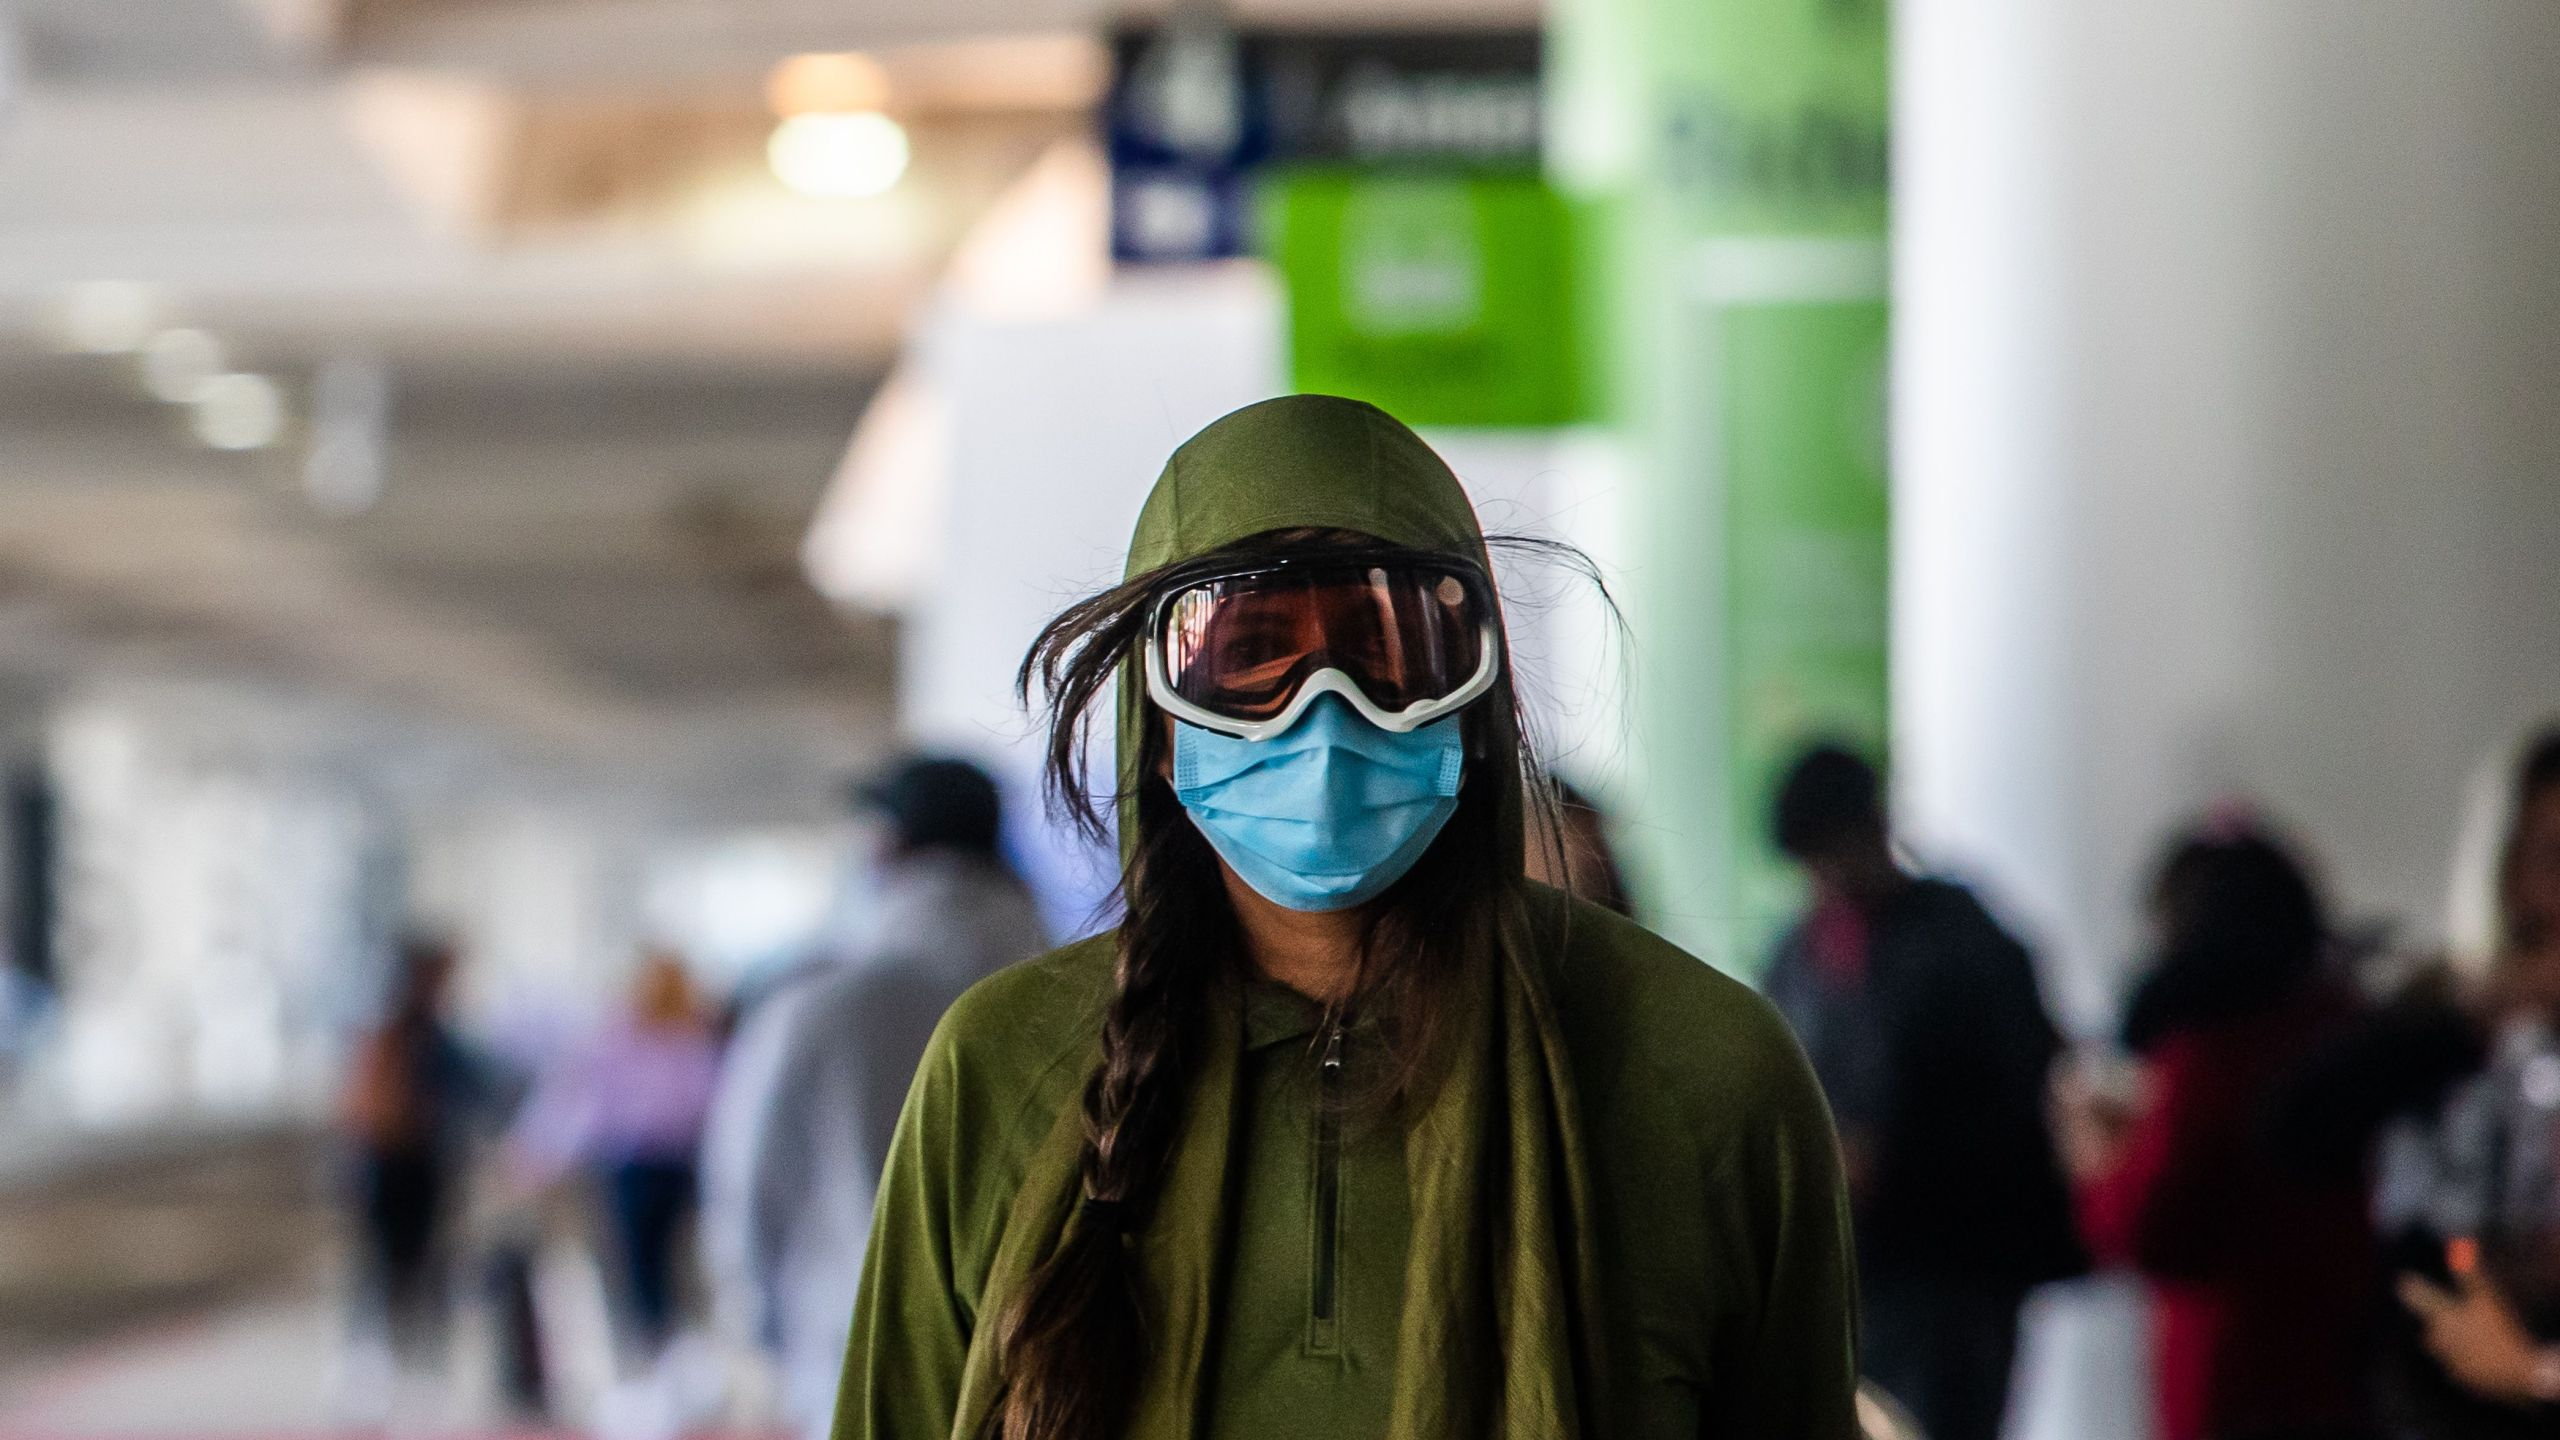 A woman wearing a face mask and goggles walks at LAX airport at the start of the Memorial Day holiday weekend during the novel coronavirus, COVID-19, pandemic in Los Angeles, California on May 22, 2020. (APU GOMES/AFP via Getty Images)